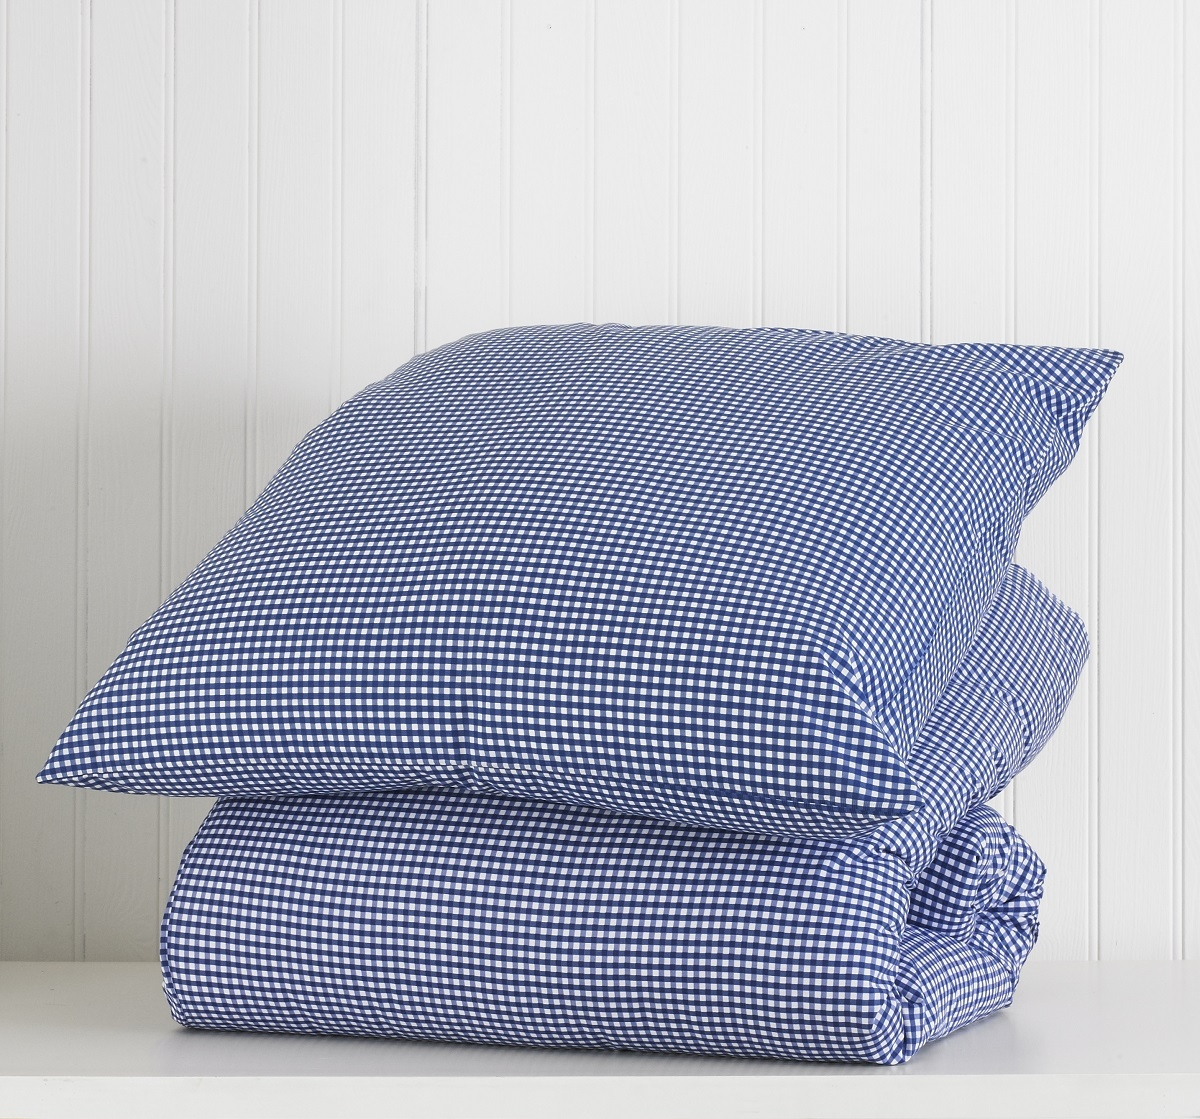 Gold_blue_check_duvet_cover-1200.jpg